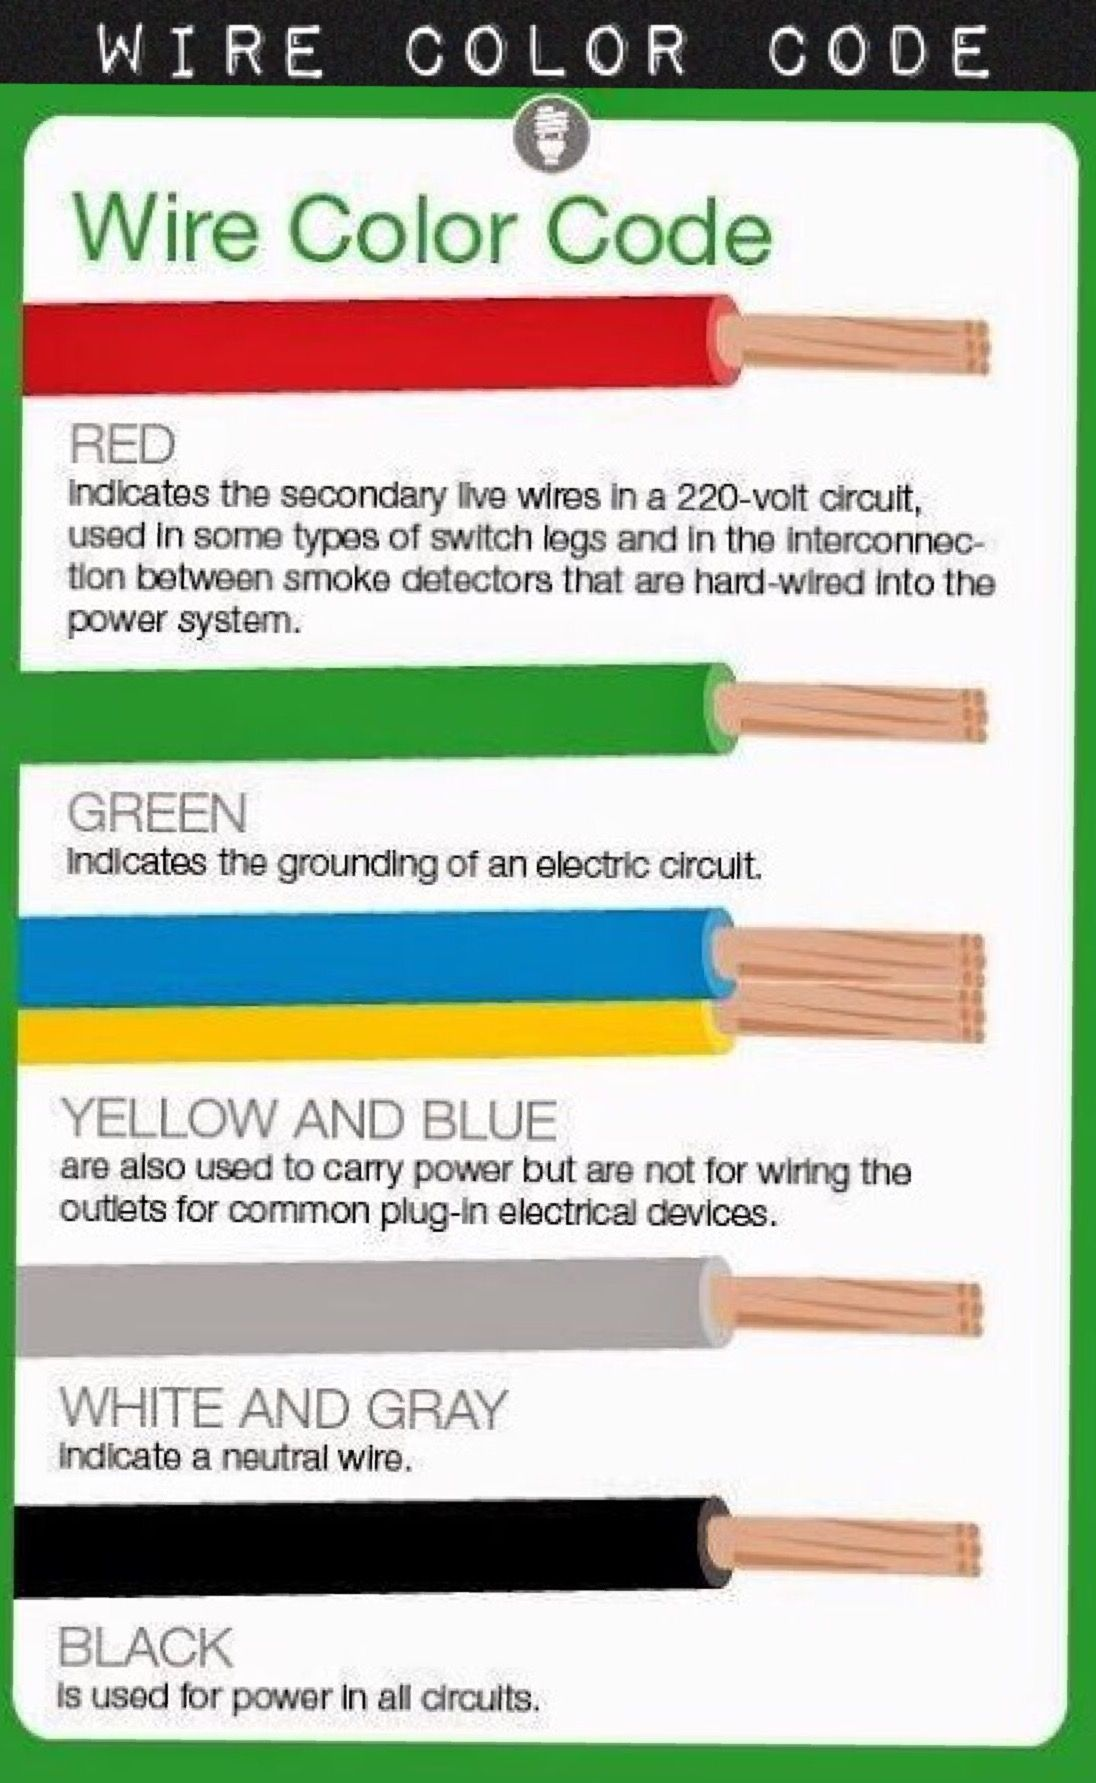 What Do Electrical Wire Color Codes Mean Garage Wood Shop Home Wiring Cable Cover Colors For More Great Improvement Tips Visit Http Www